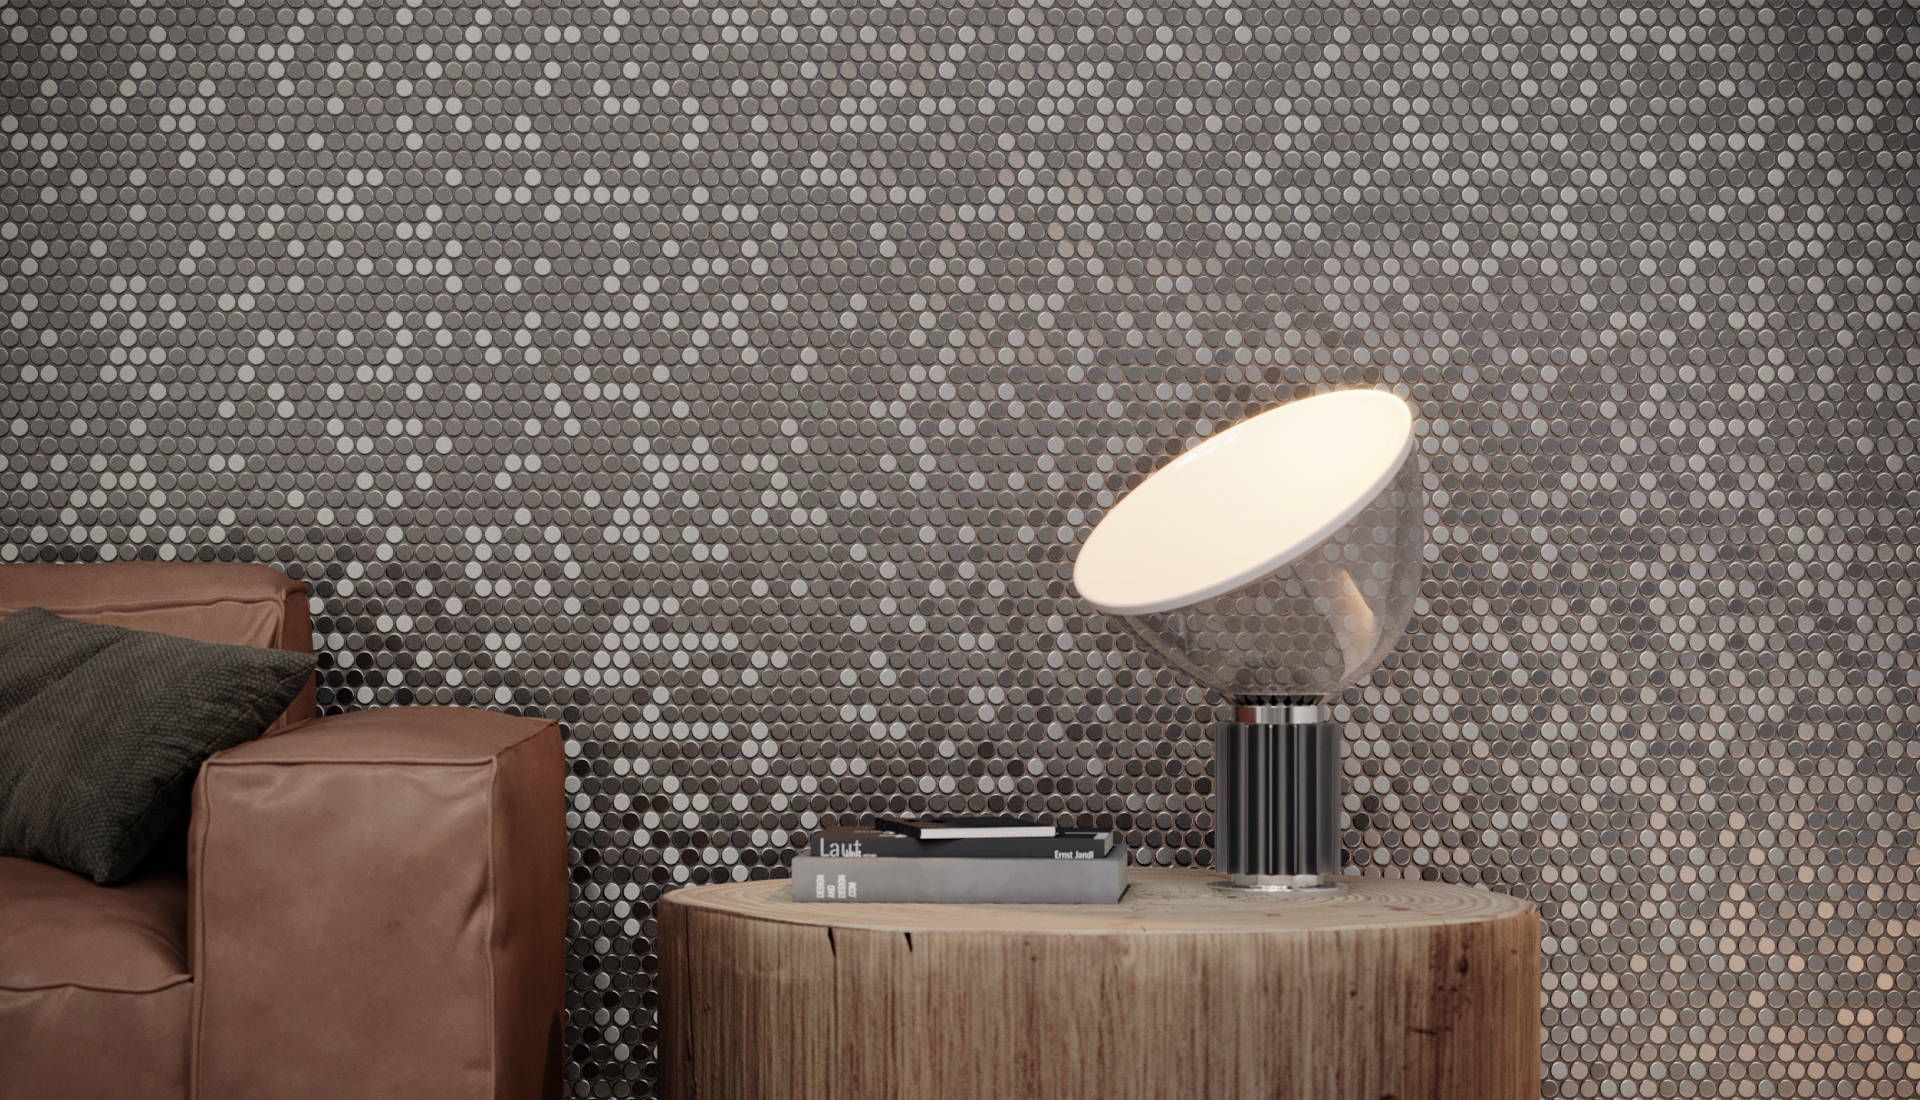 Penny Round Glossy Stainless Steel Mosaic